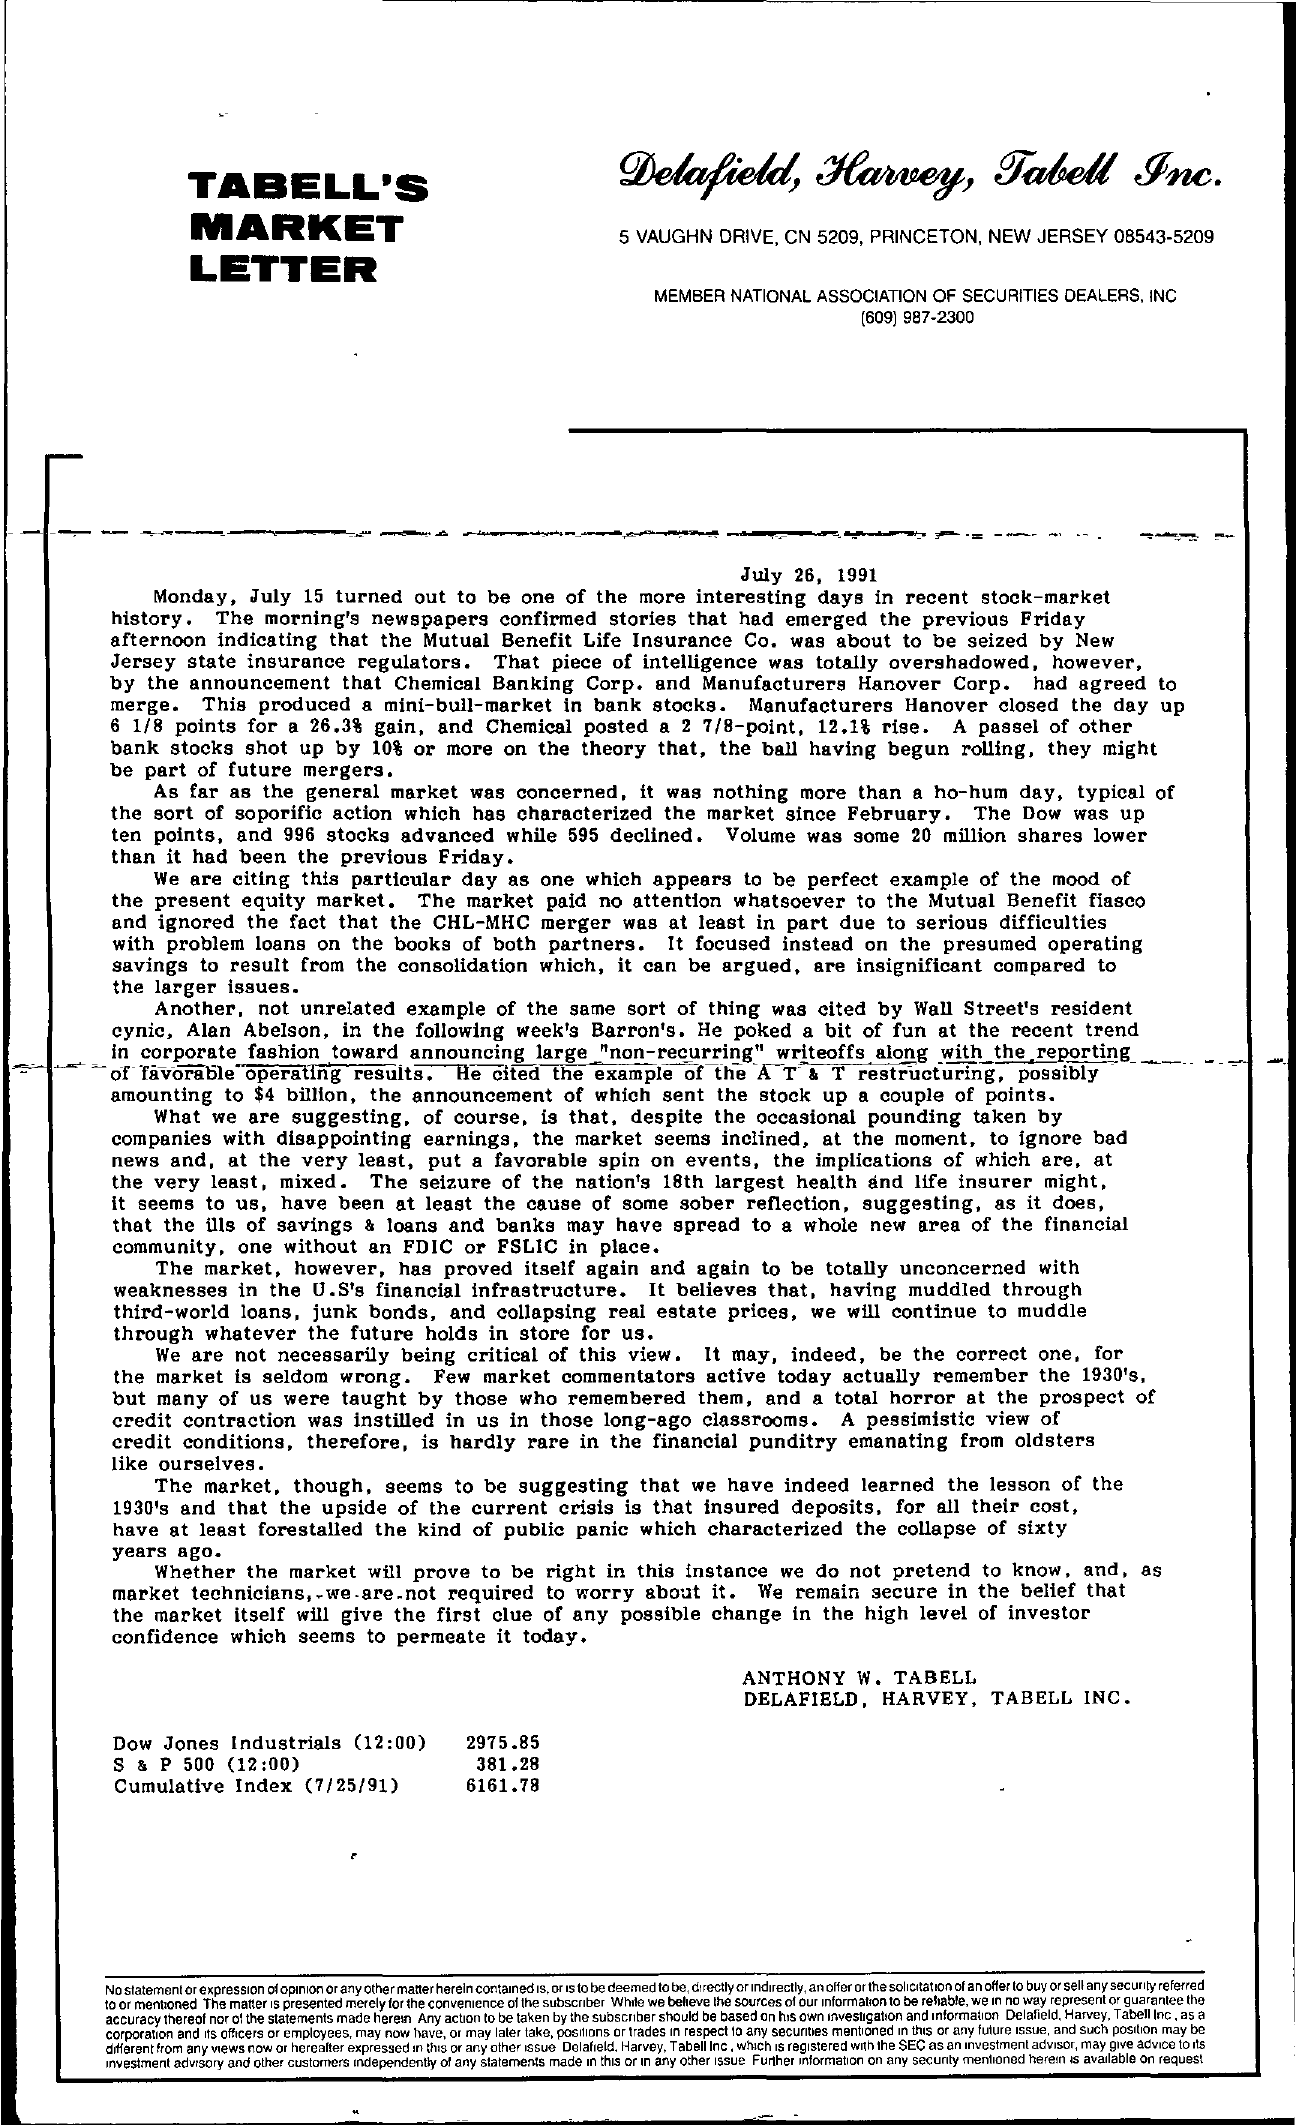 Tabell's Market Letter - July 26, 1991